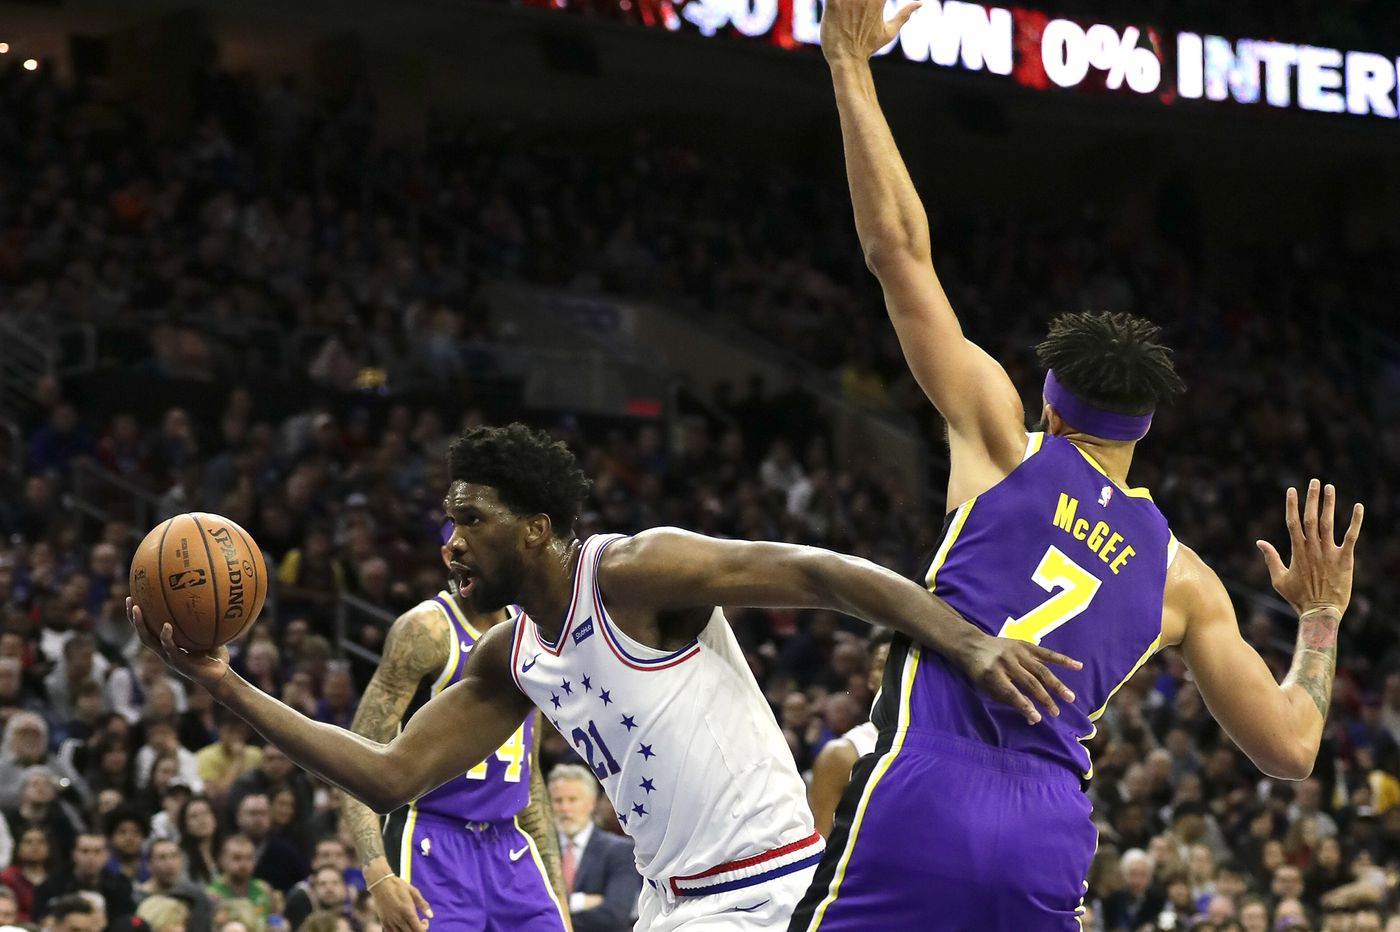 Sixers' free-agency wish list should prioritize a backup center who would allow Joel Embiid to play significantly less | David Murphy